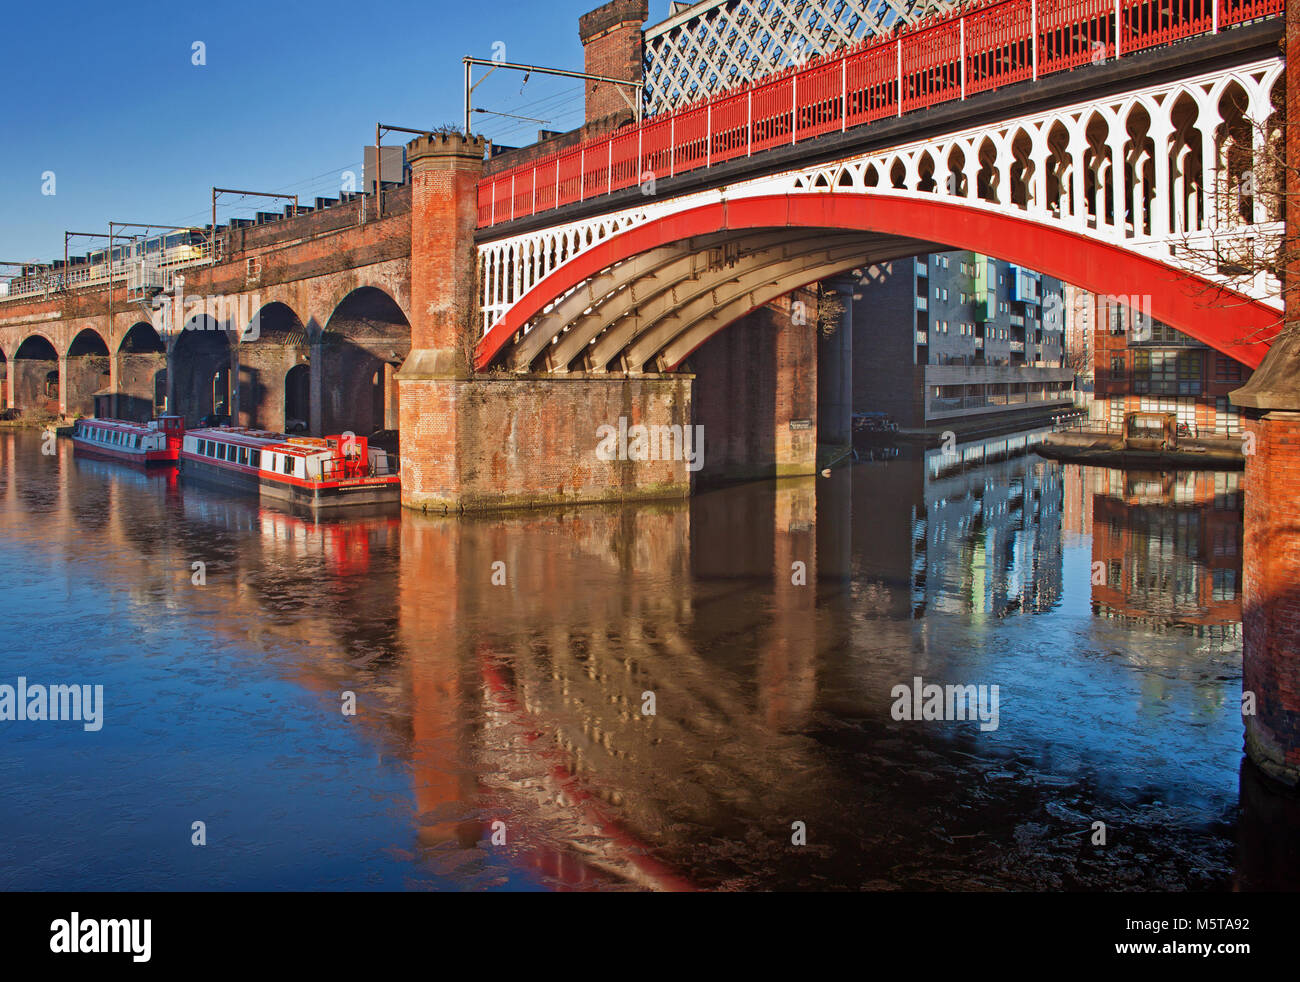 Colourful canal basin at Castlefield - Stock Image